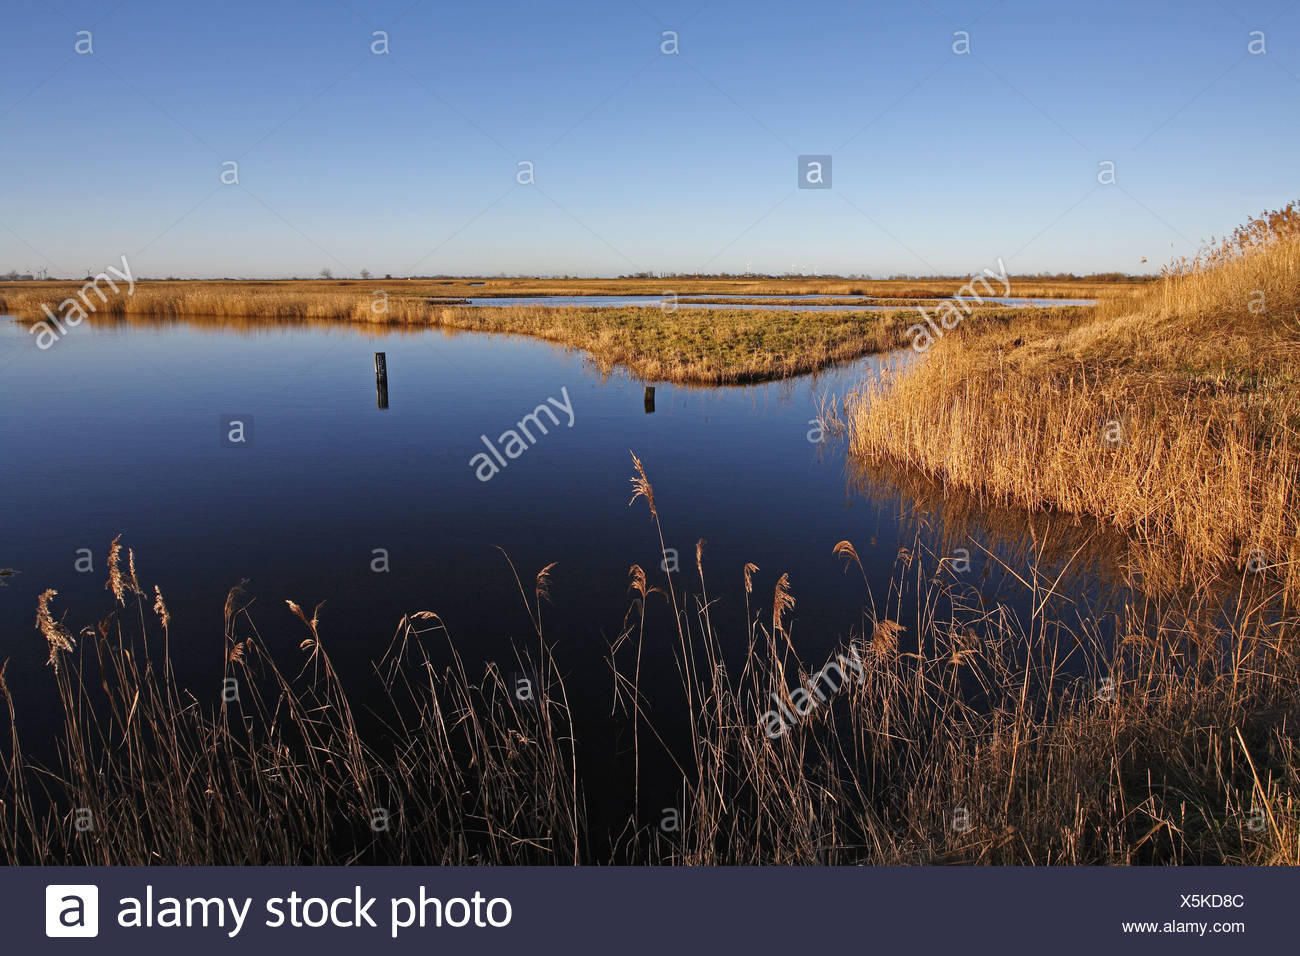 waterfowl reservation, Fehmarn island, Germany - Stock Image